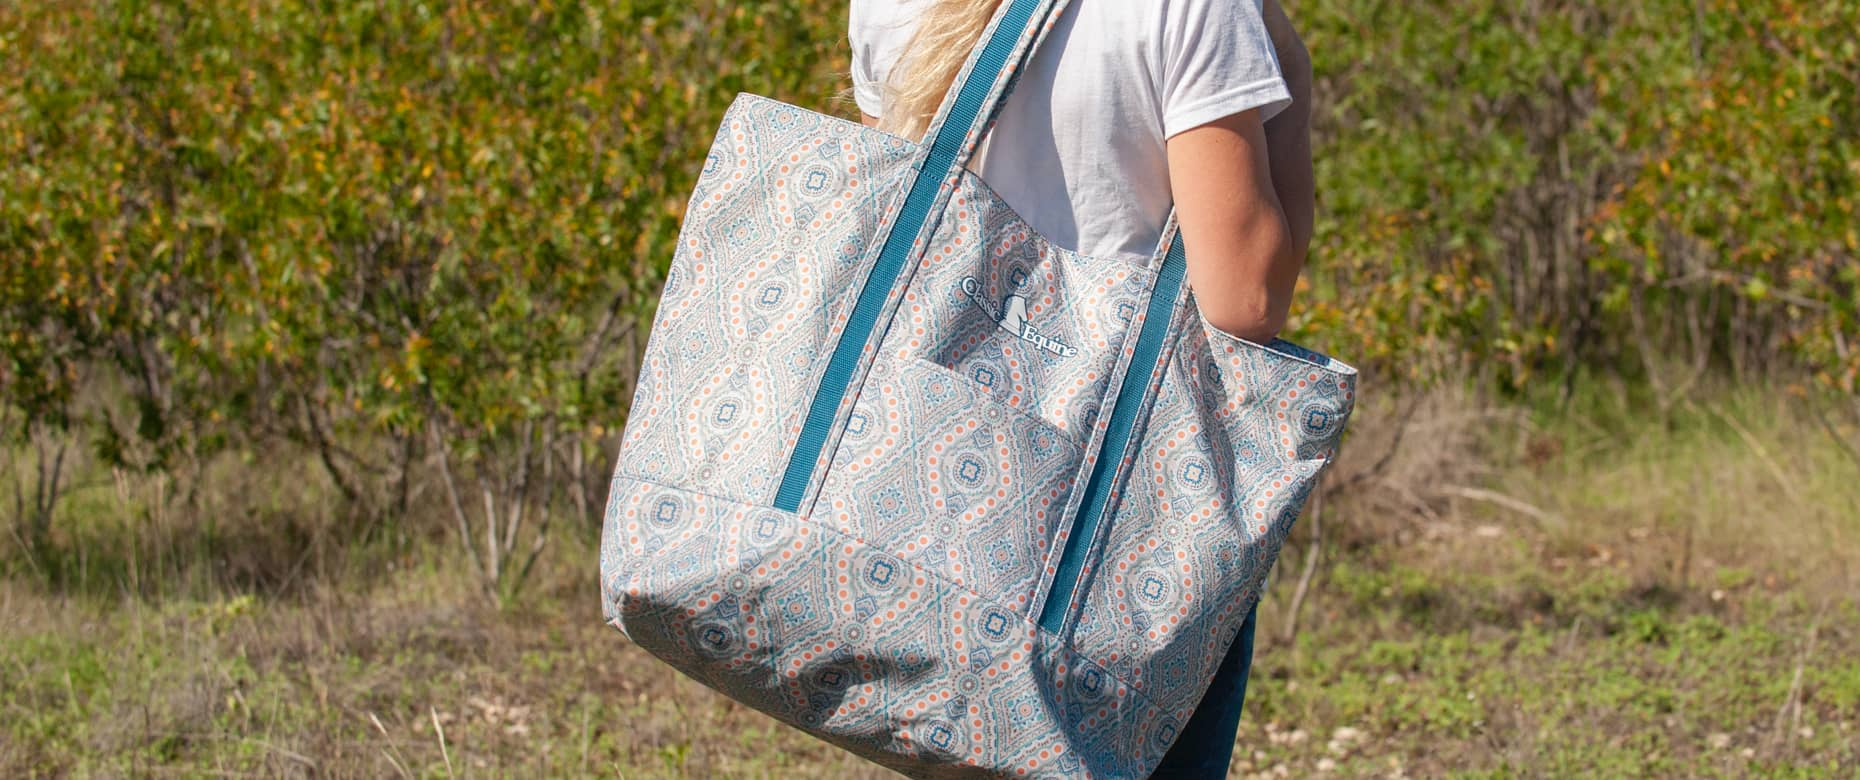 Classic Equine Designer Line Travel Collection is a full line of bags and accessories for the weekend warrior